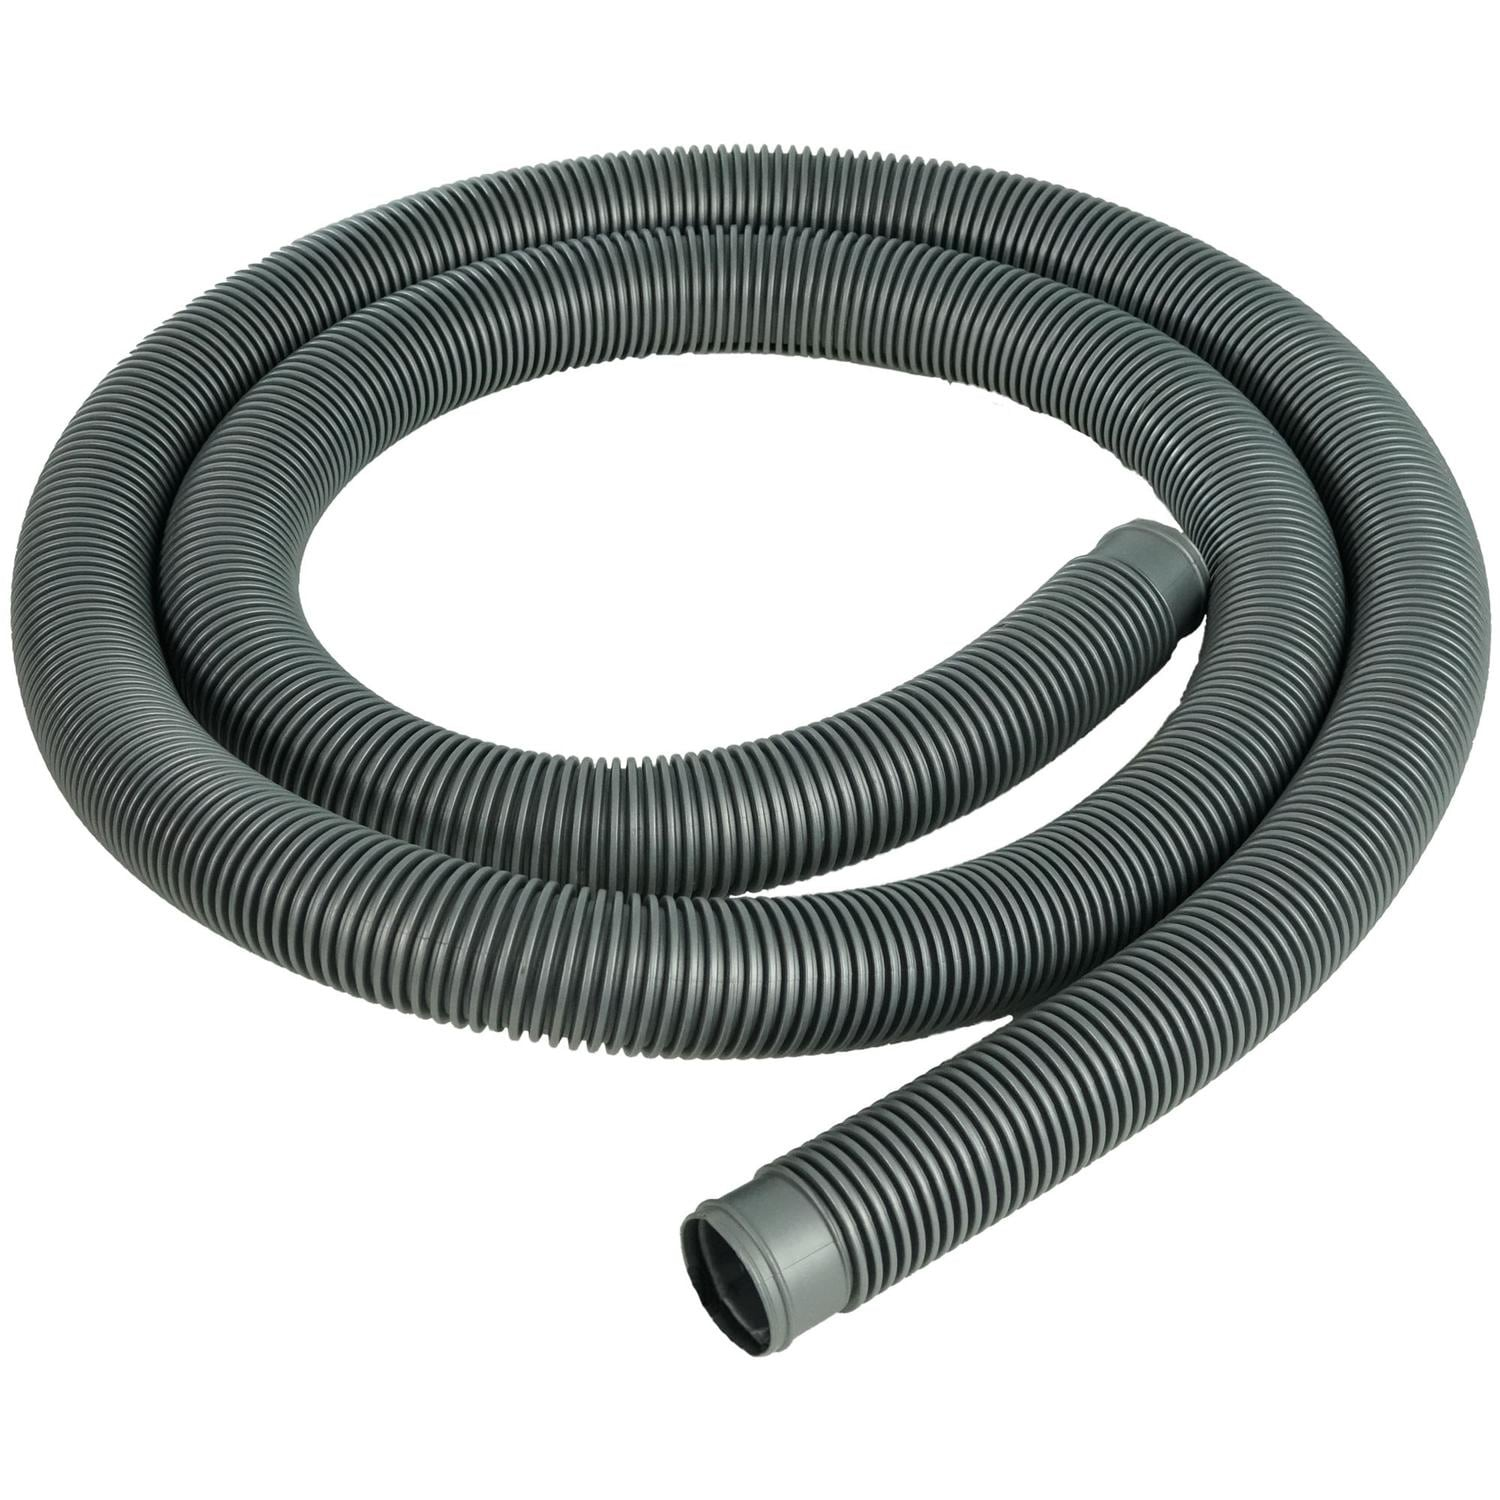 Pool Hose Gray Heavy Duty Pool Filter Connect Hose 9 X 1 5